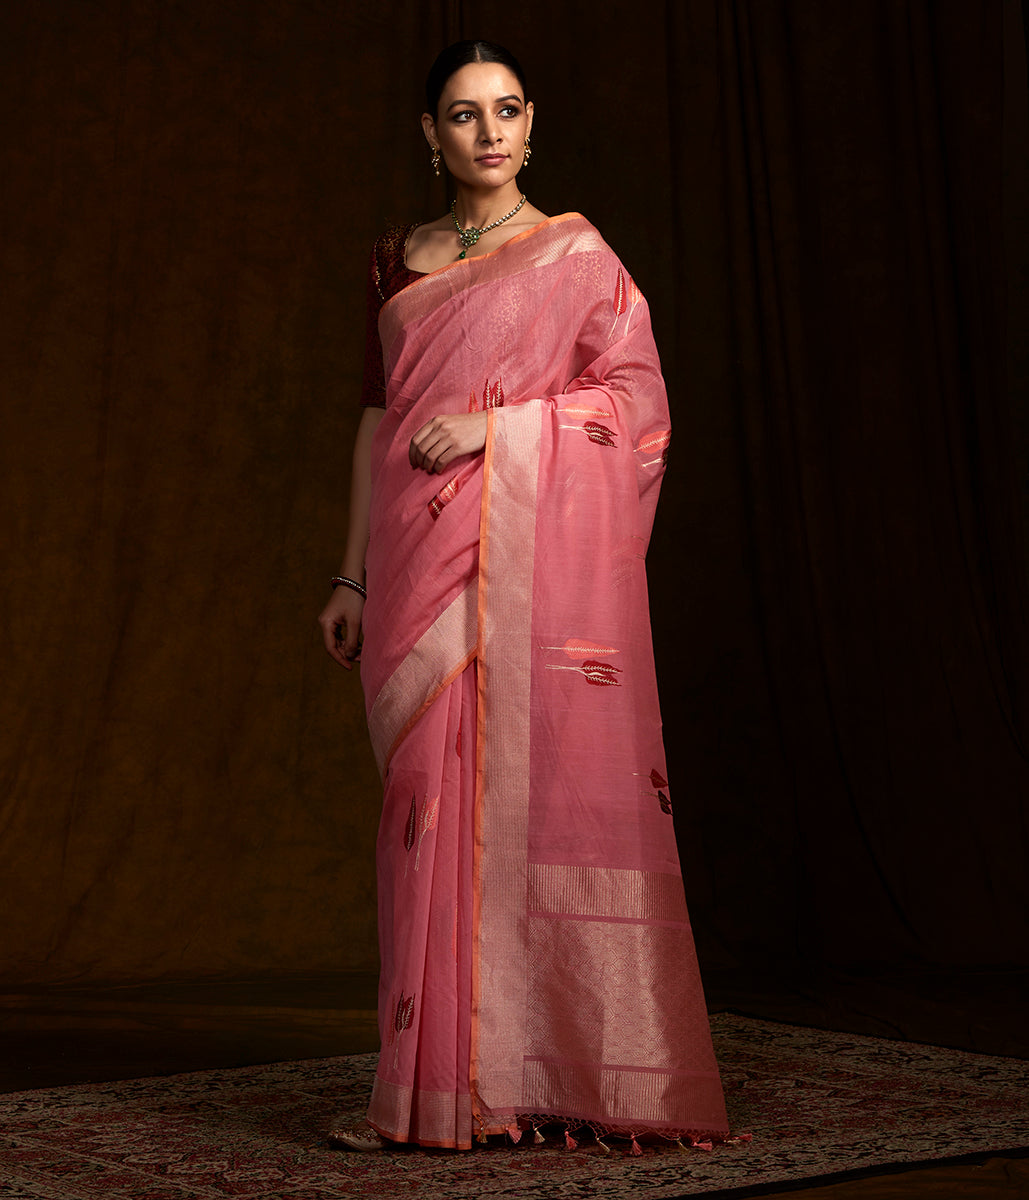 Handwoven Banarasi Linen saree with kadhwa booti woven in resham